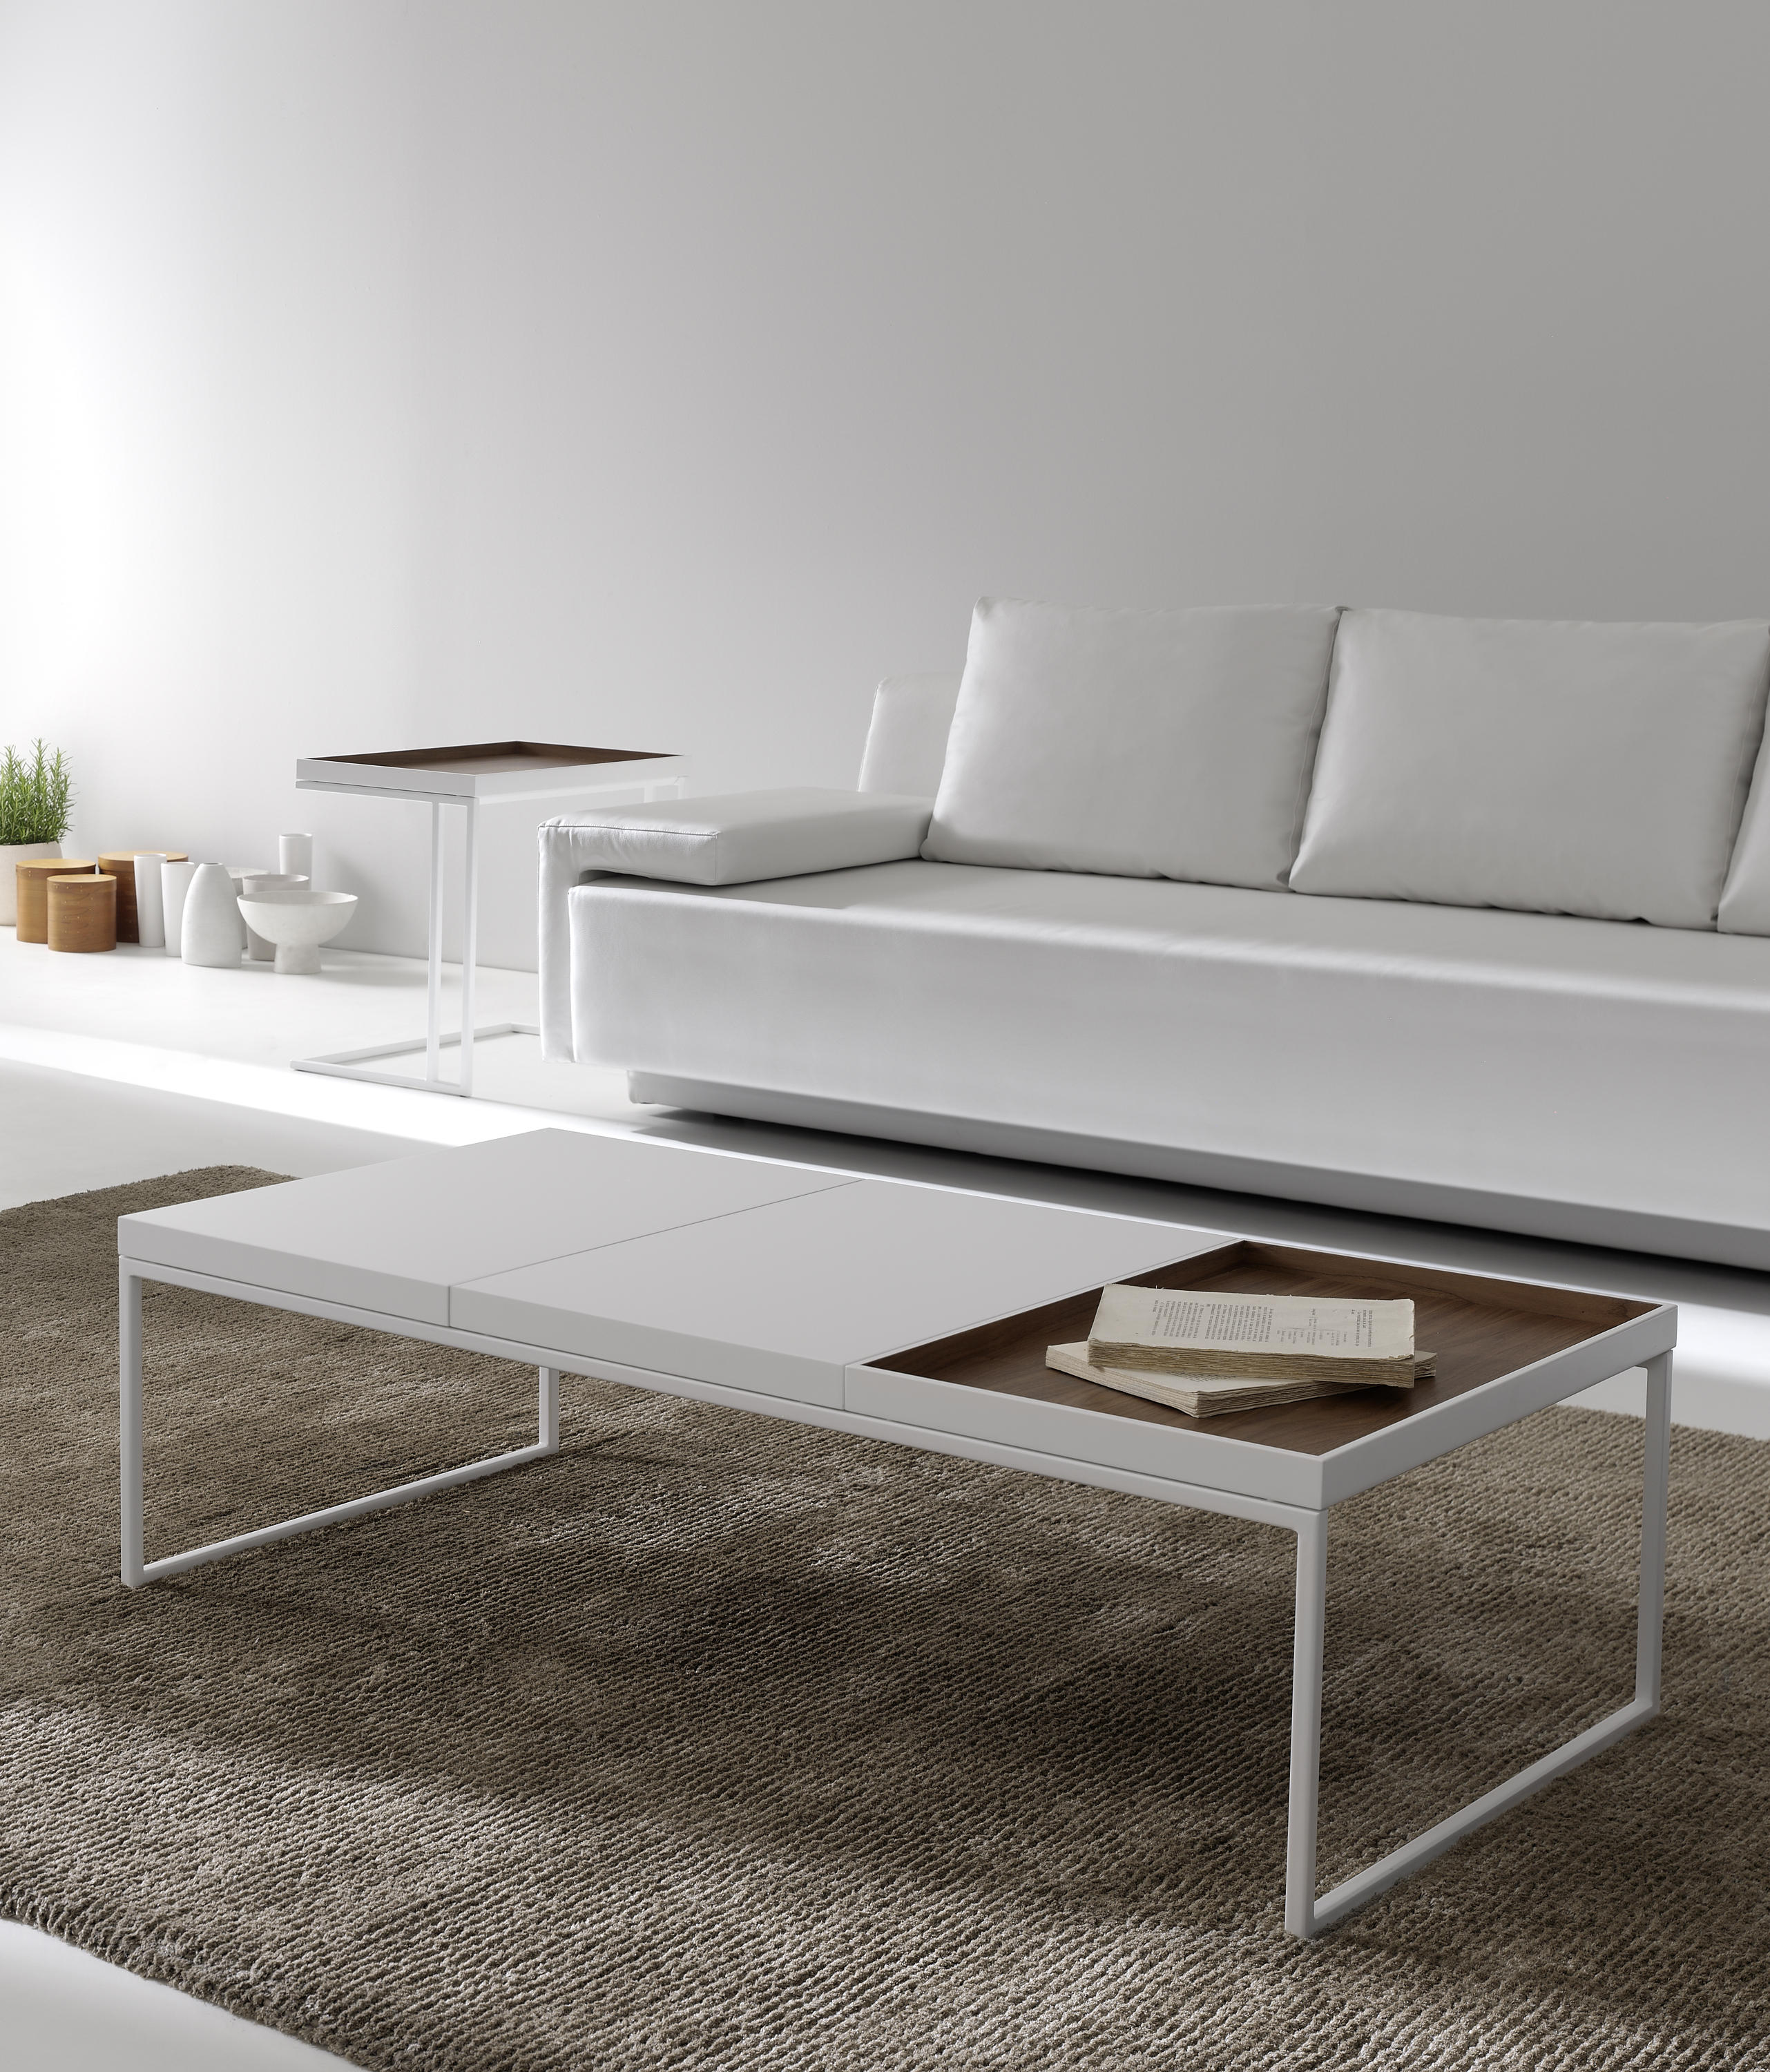 Tray 64 side tables from kendo mobiliario architonic for By h mobiliario